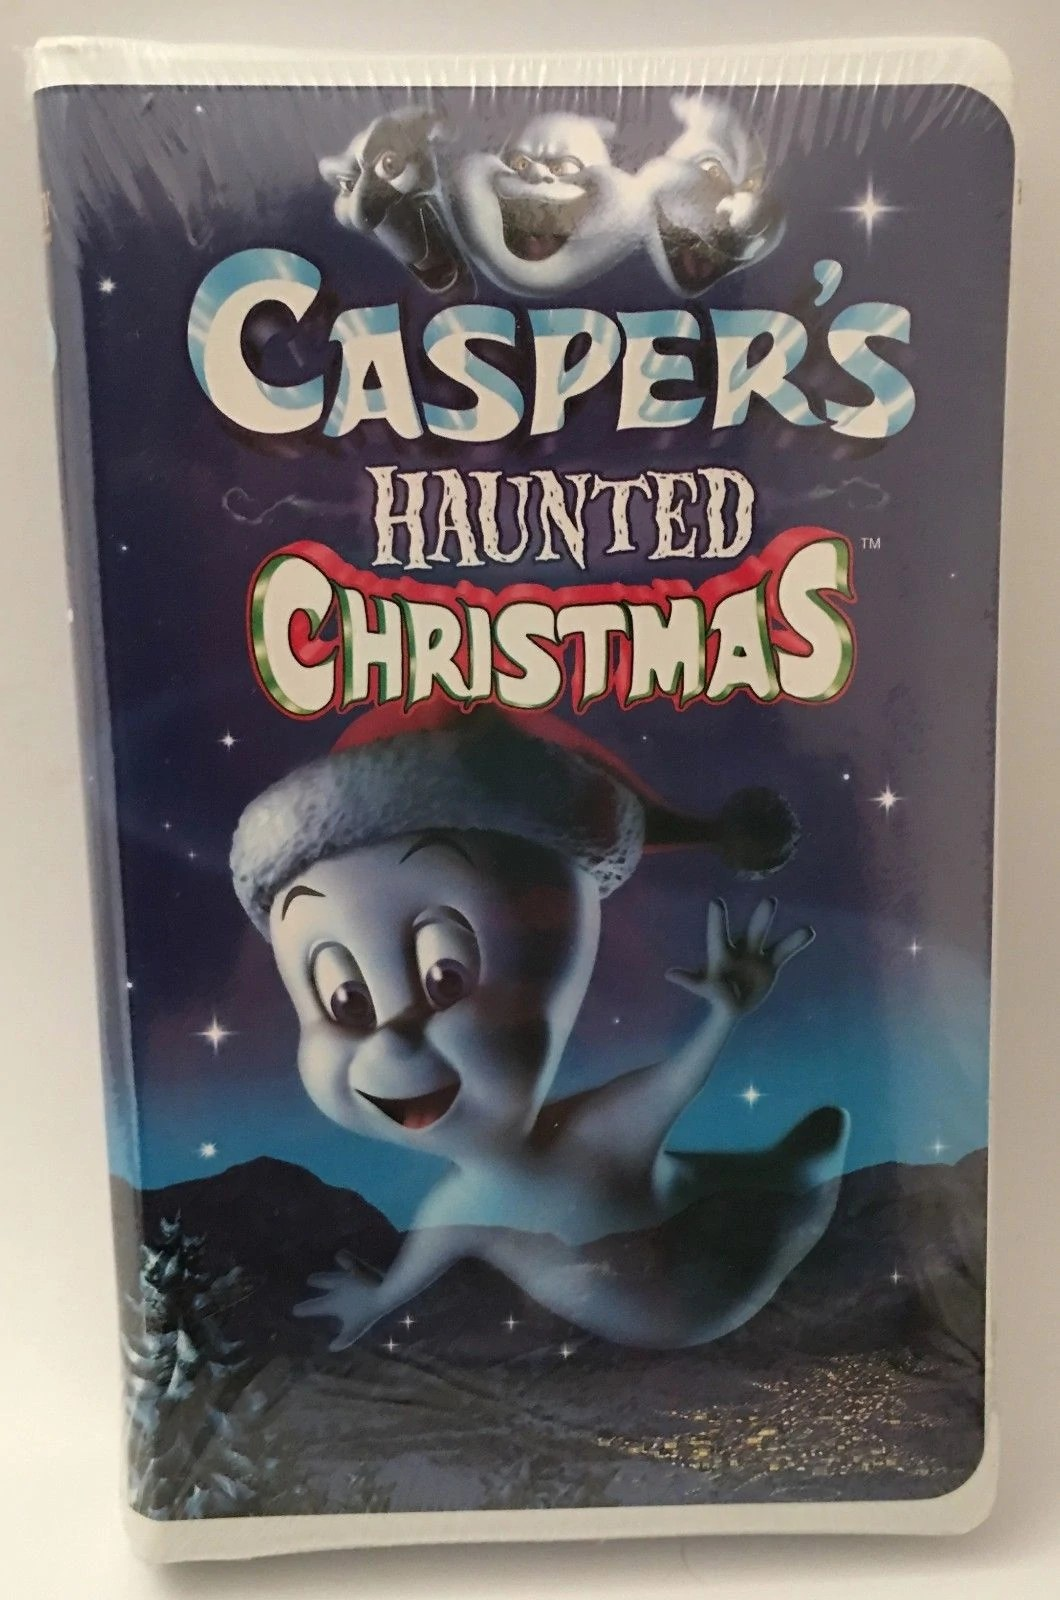 Opening To Caspers Haunted Christmas 2000 VHS From The